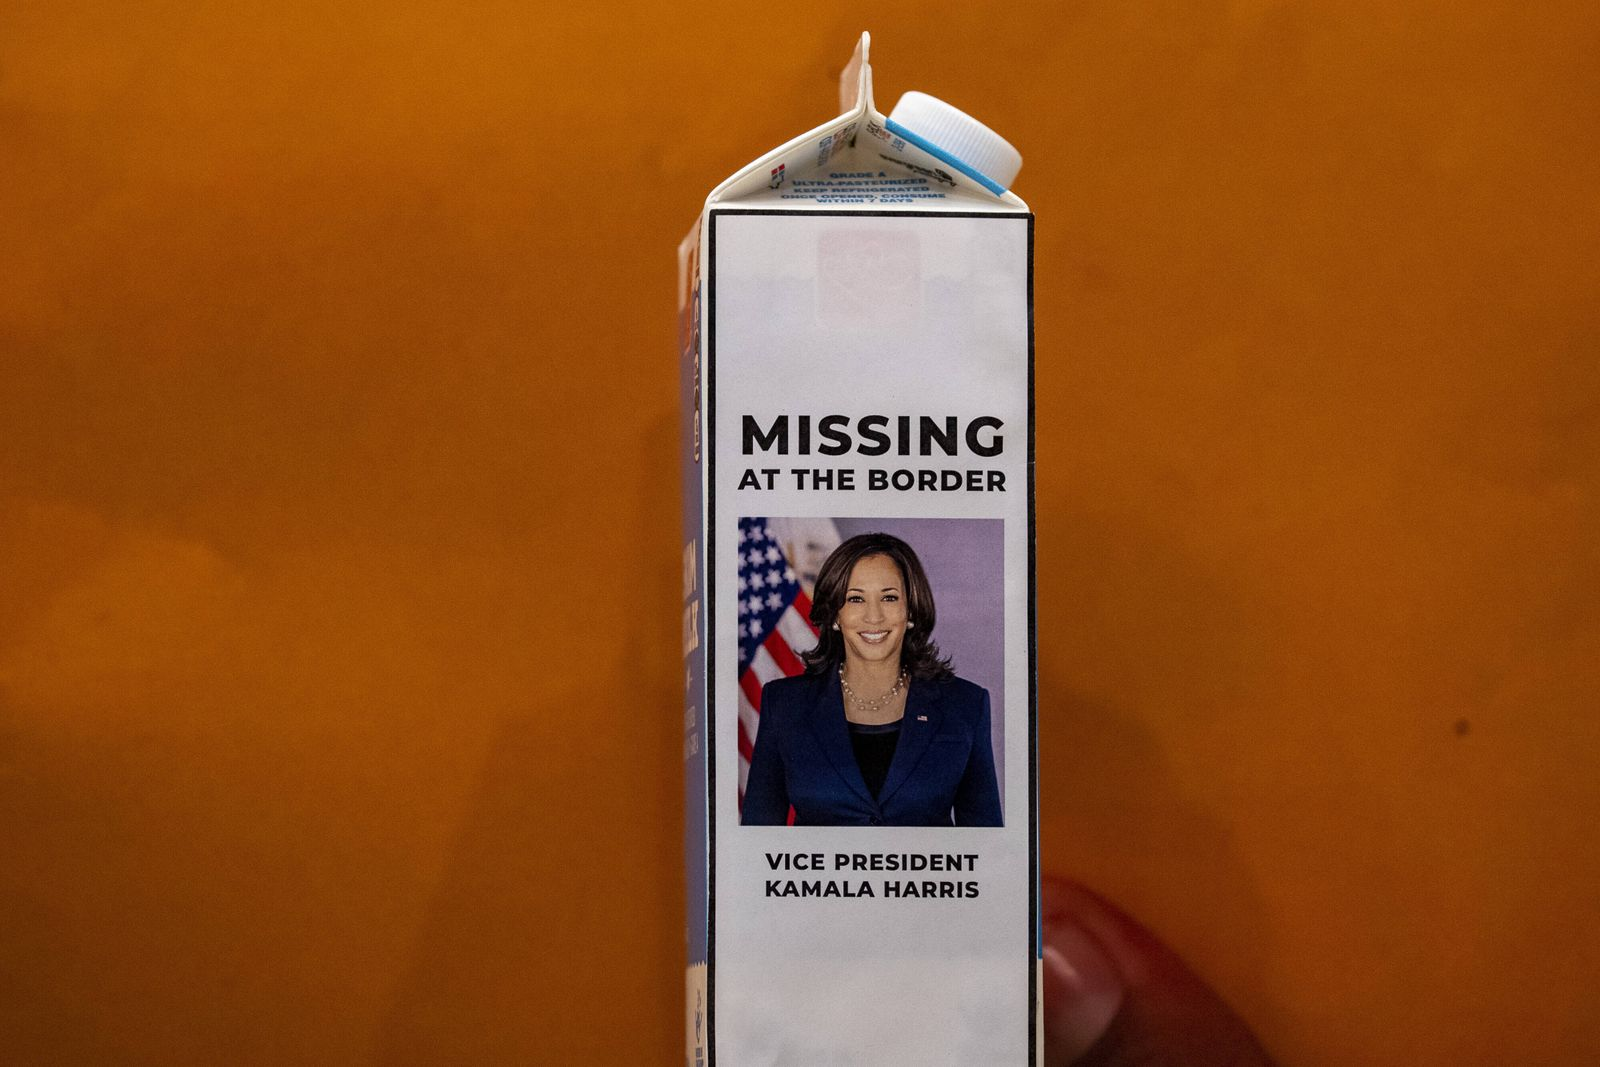 News Bilder des Tages Rep. Steve Scalise (R-LA) shows off a milk carton with Vice President Harris s picture on with wor